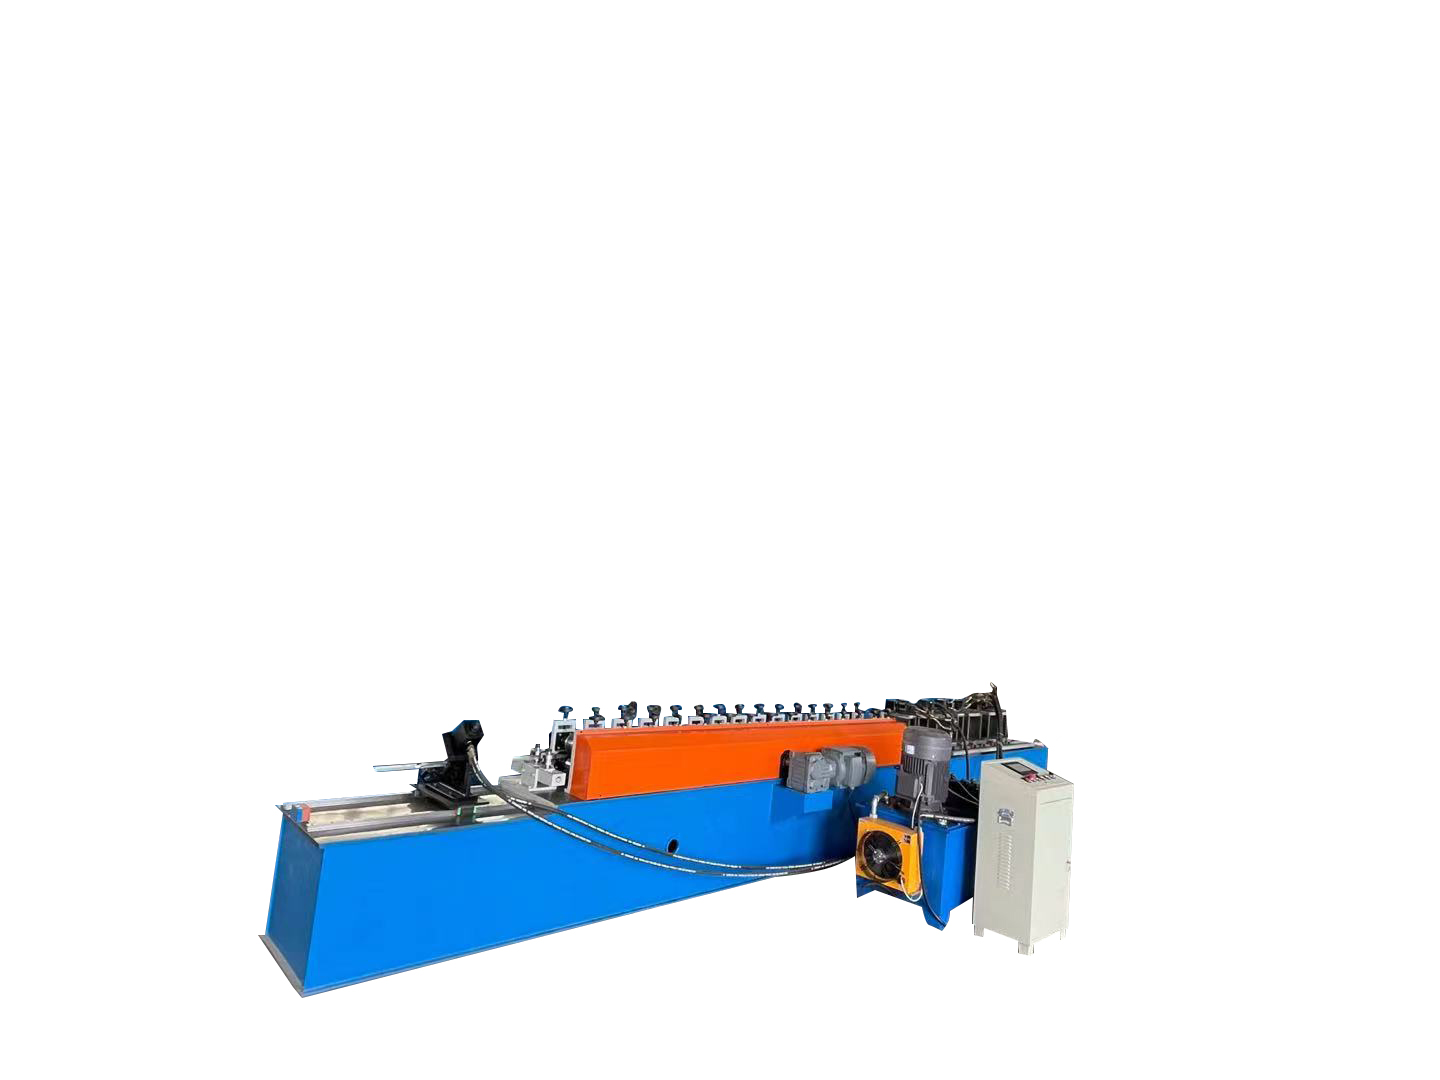 The physical factory sells high-quality C U molding machines, supports one-piece sales, and supports offline inspections